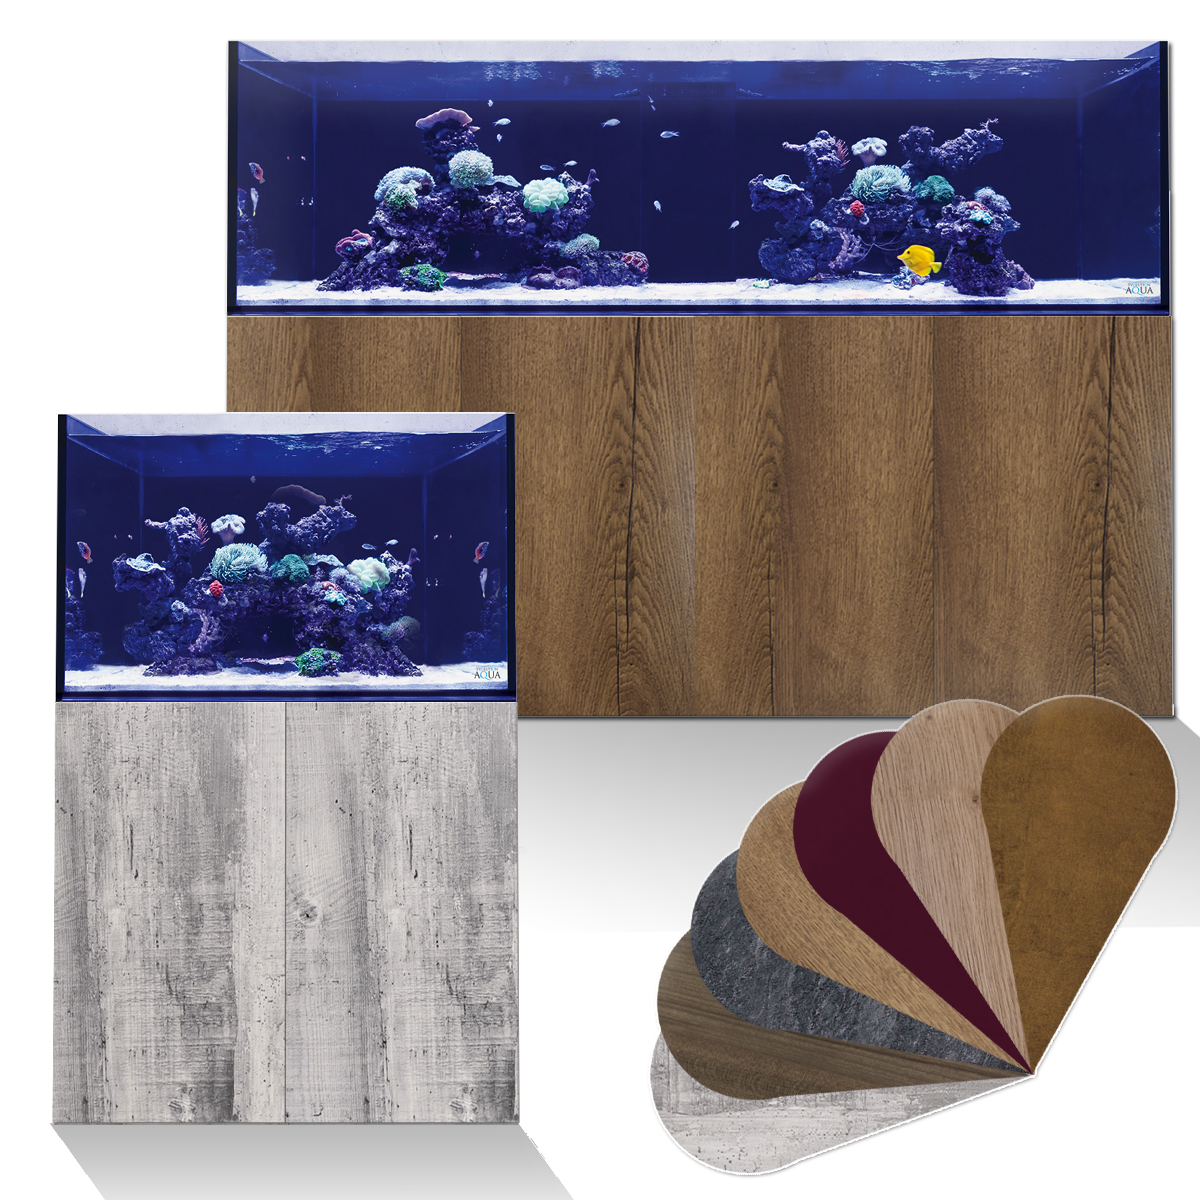 Feng Shui Fish Tank Best Placing and Number of Fish